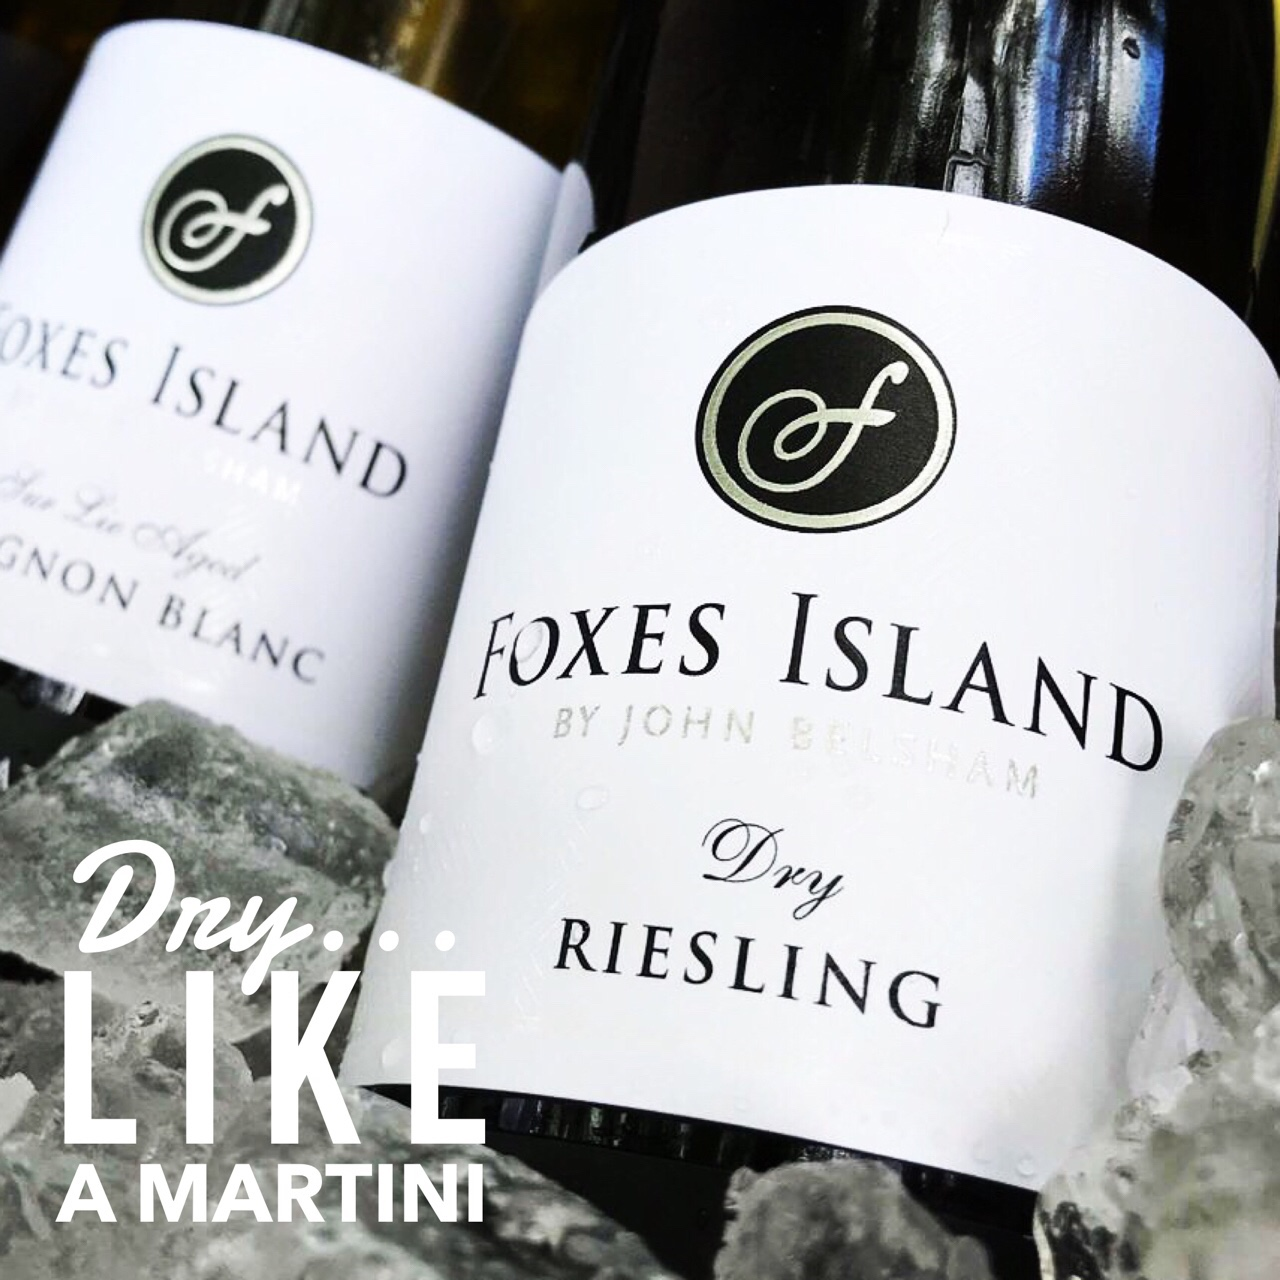 Foxes Island Dry Riesling